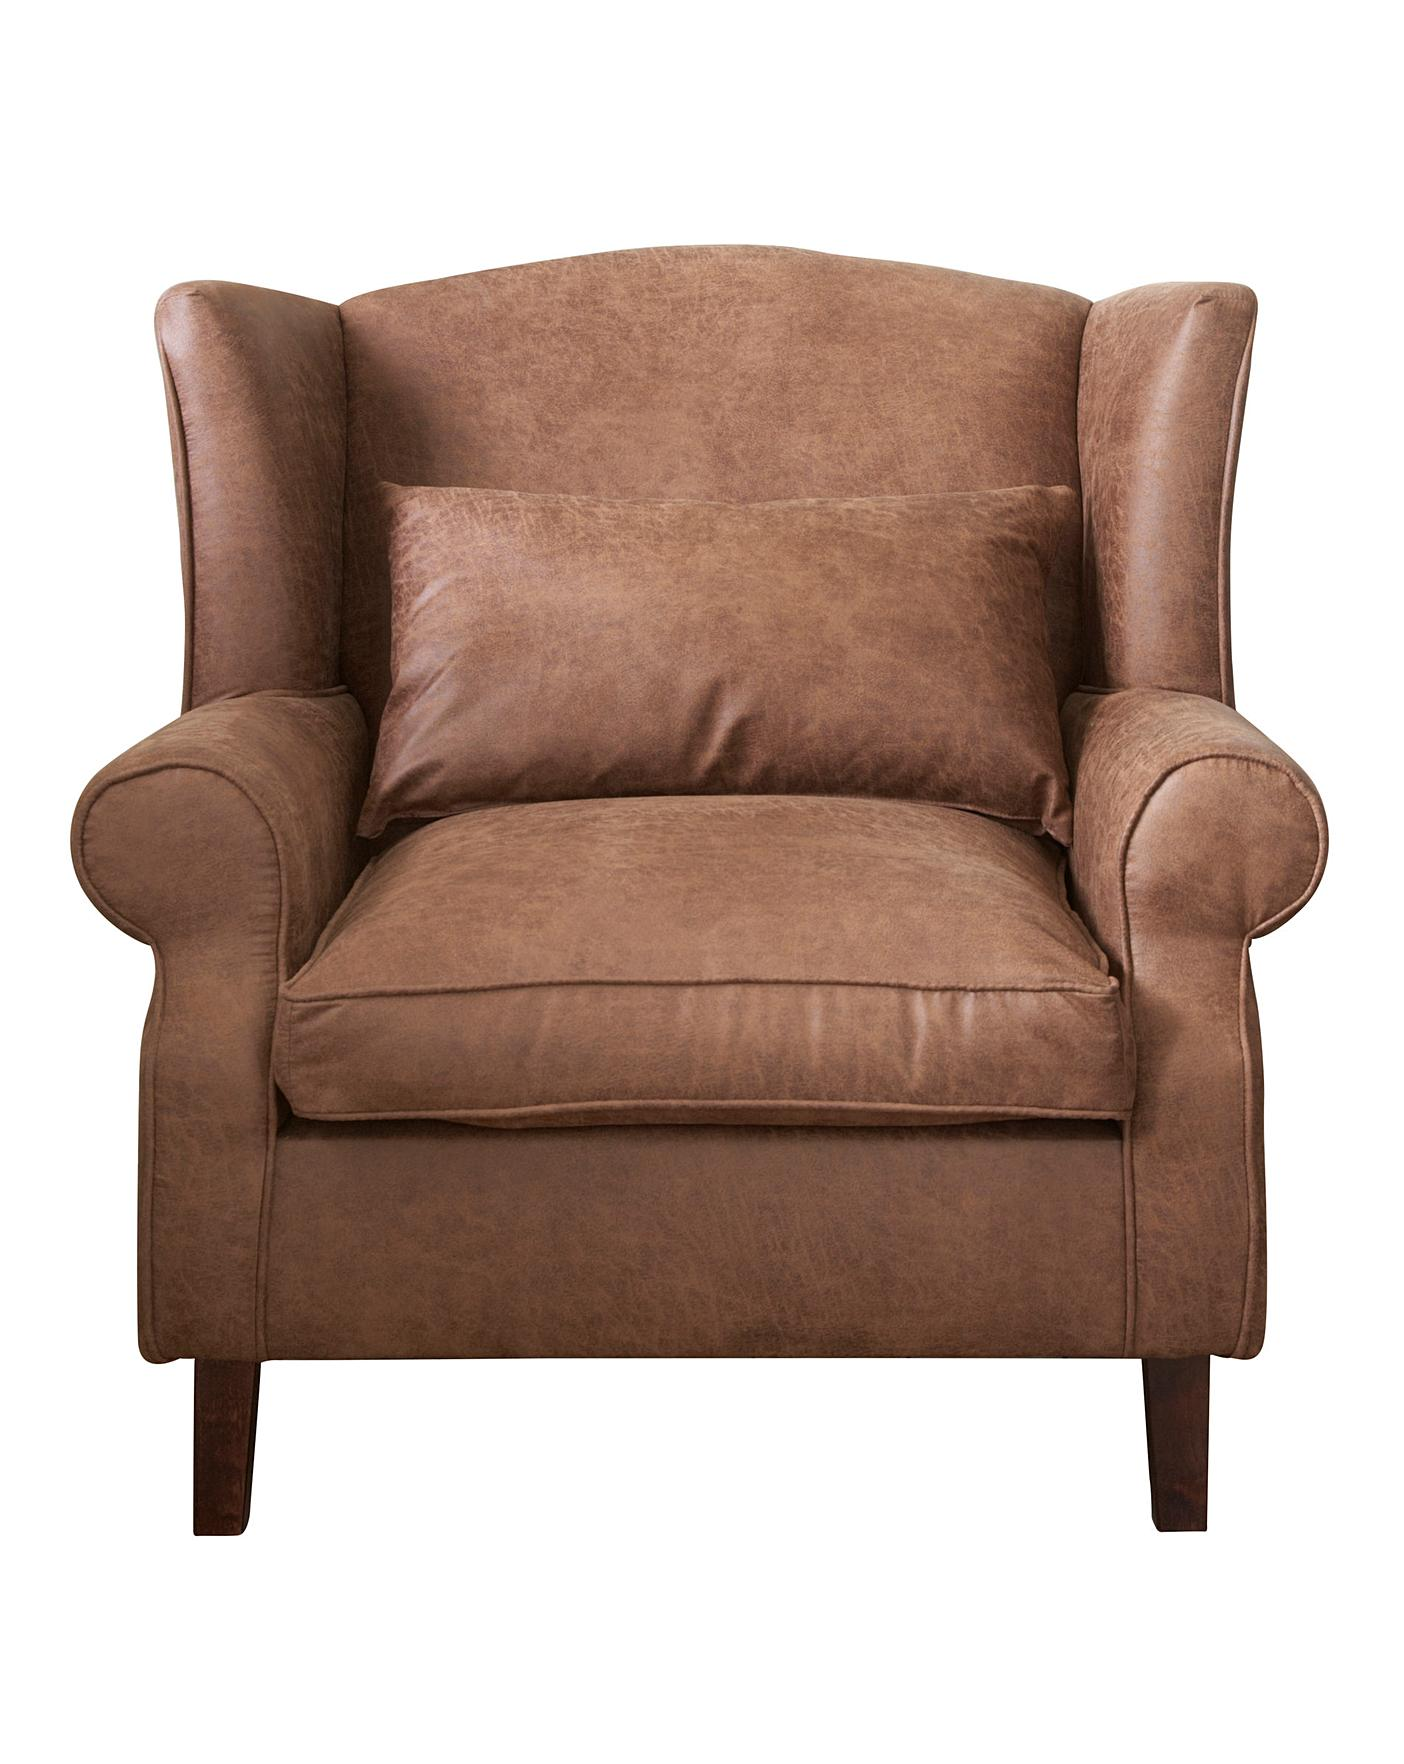 Holmfirth Wing Chair J D Williams